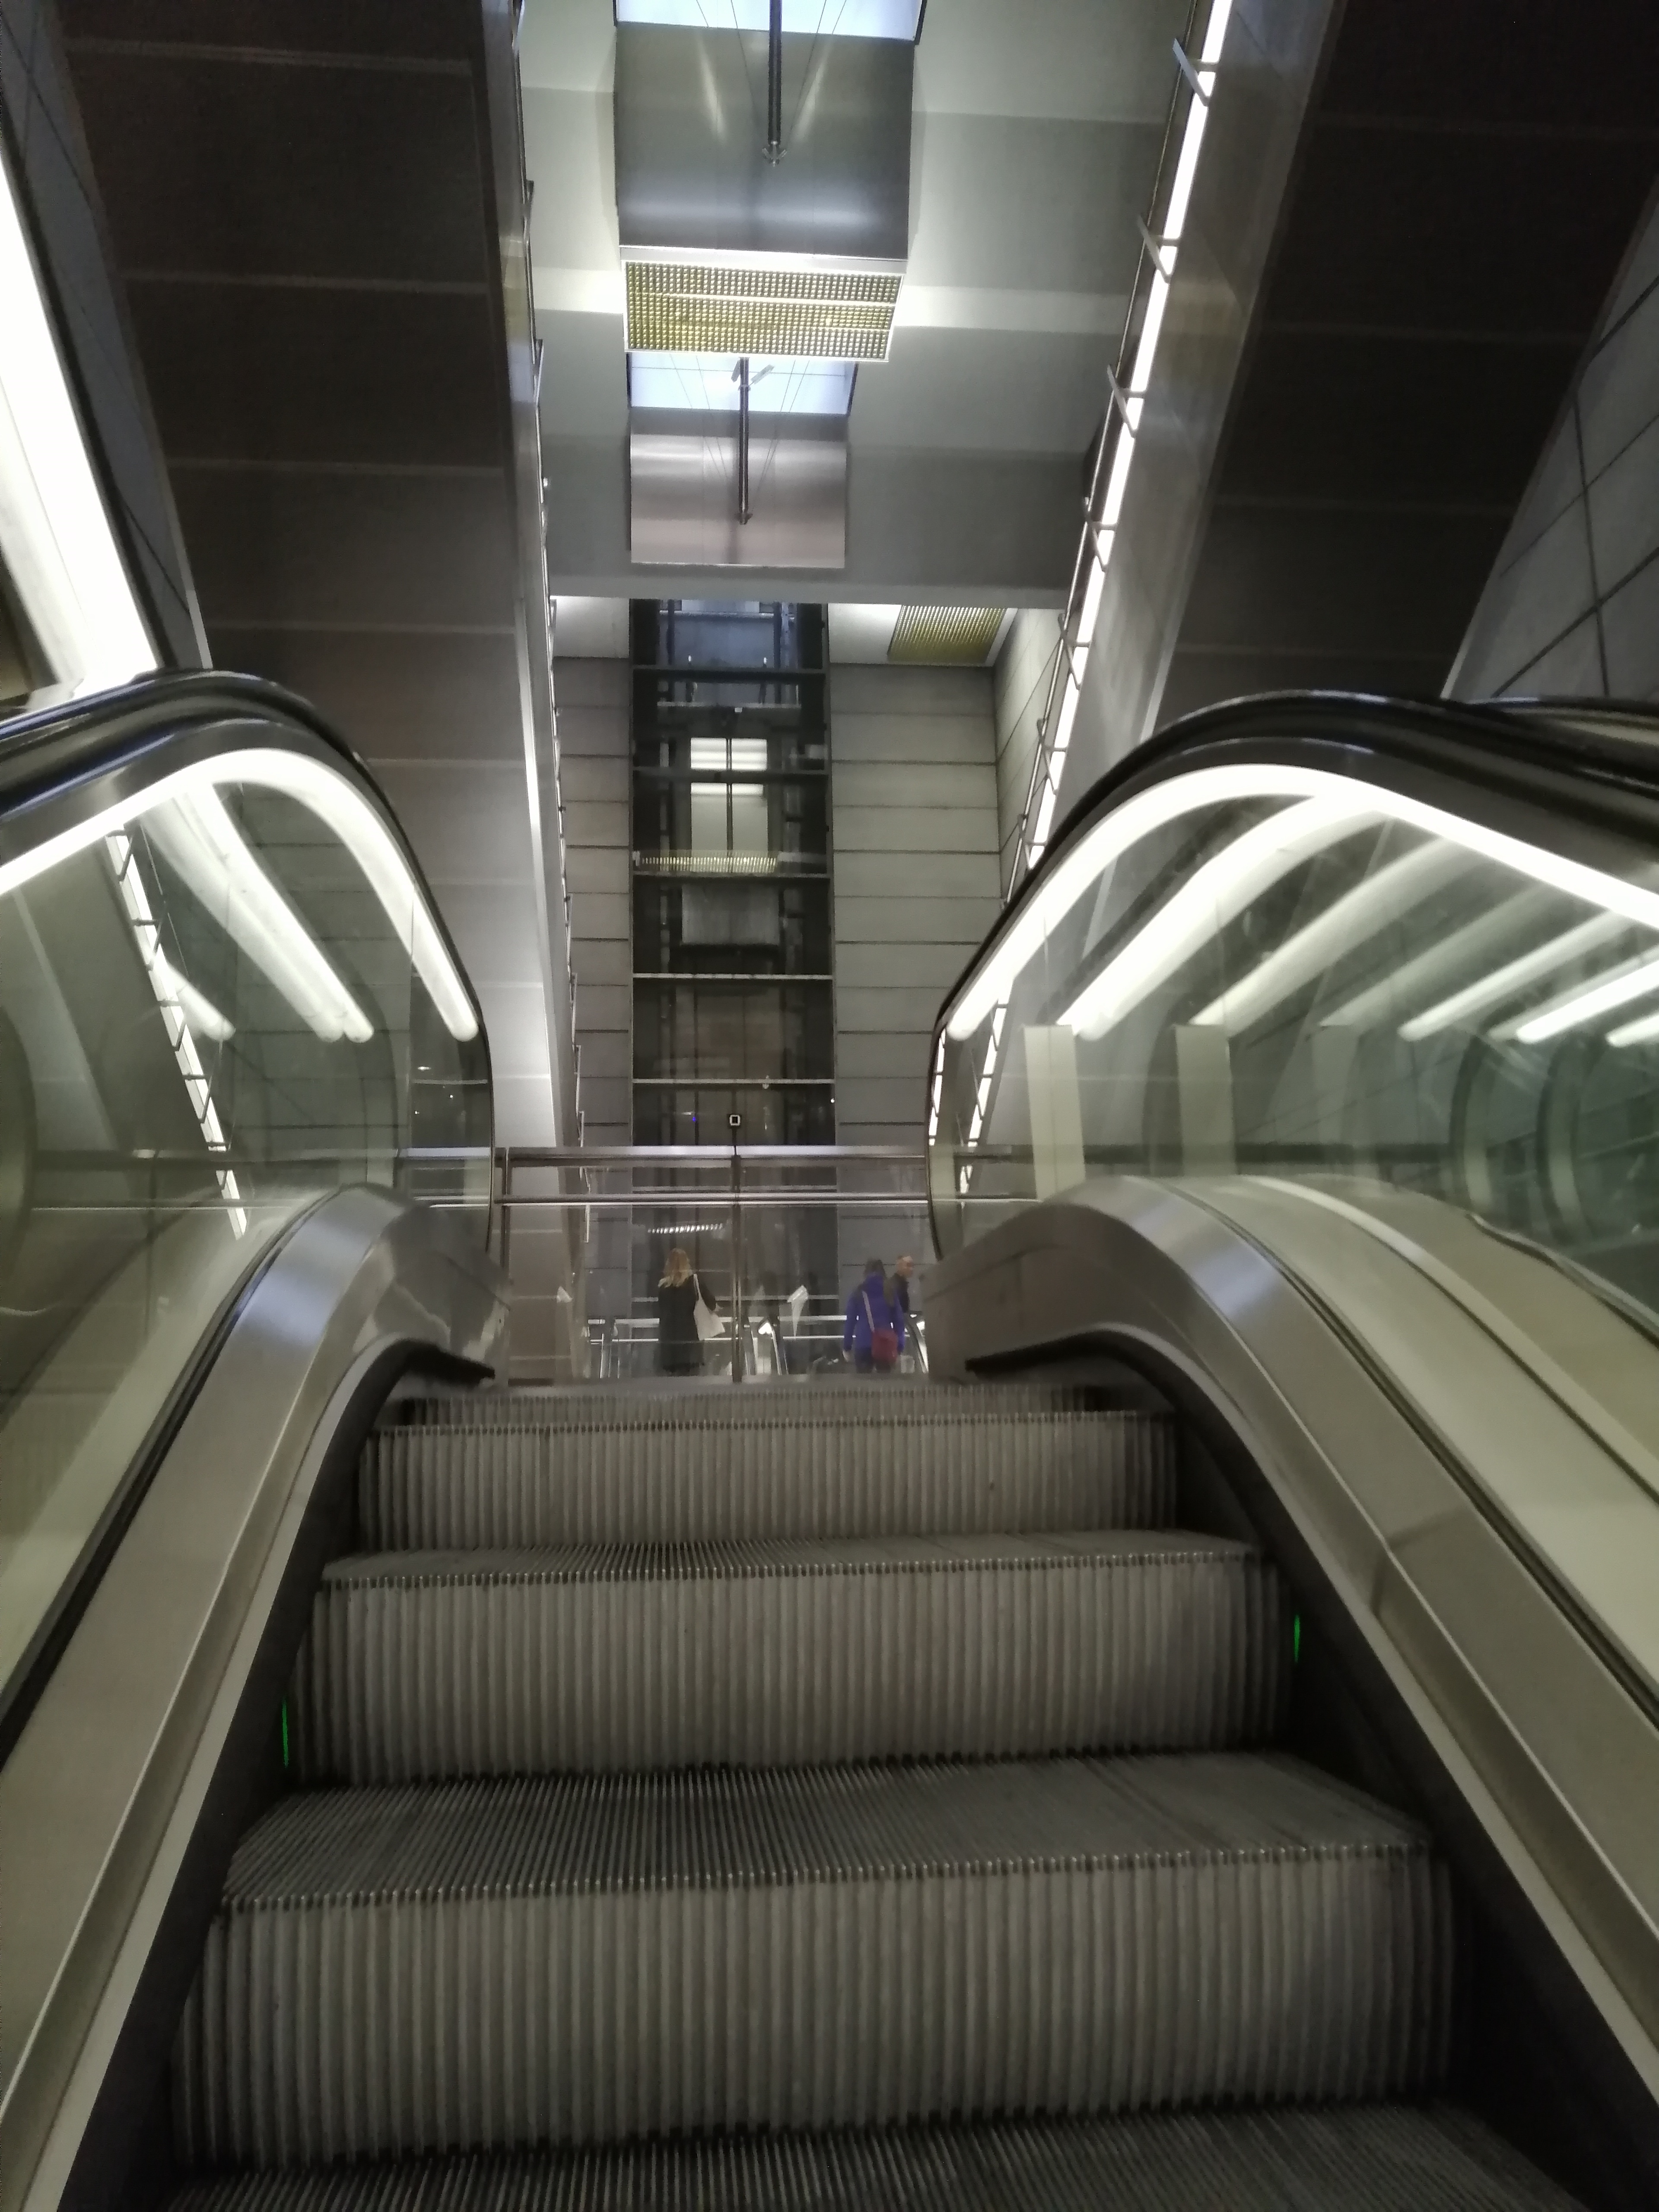 Escalator travelling up